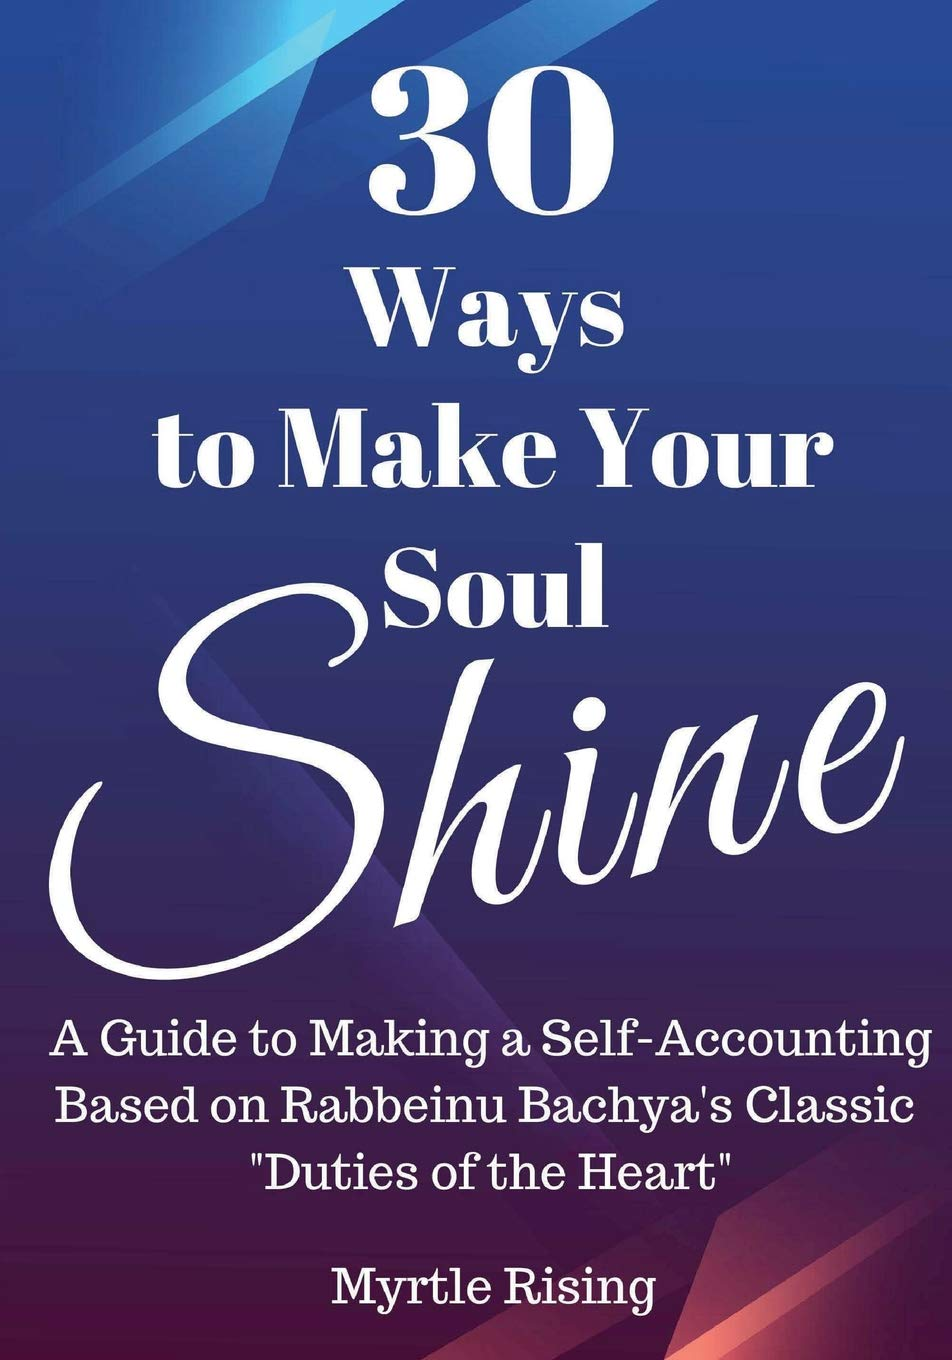 "Read Online 30 Ways to Make Your Soul Shine: A Workbook Guide to Making a Self-Accounting Based on Rabbeinu Bachya's Classic ""Duties of the Heart"" PDF"